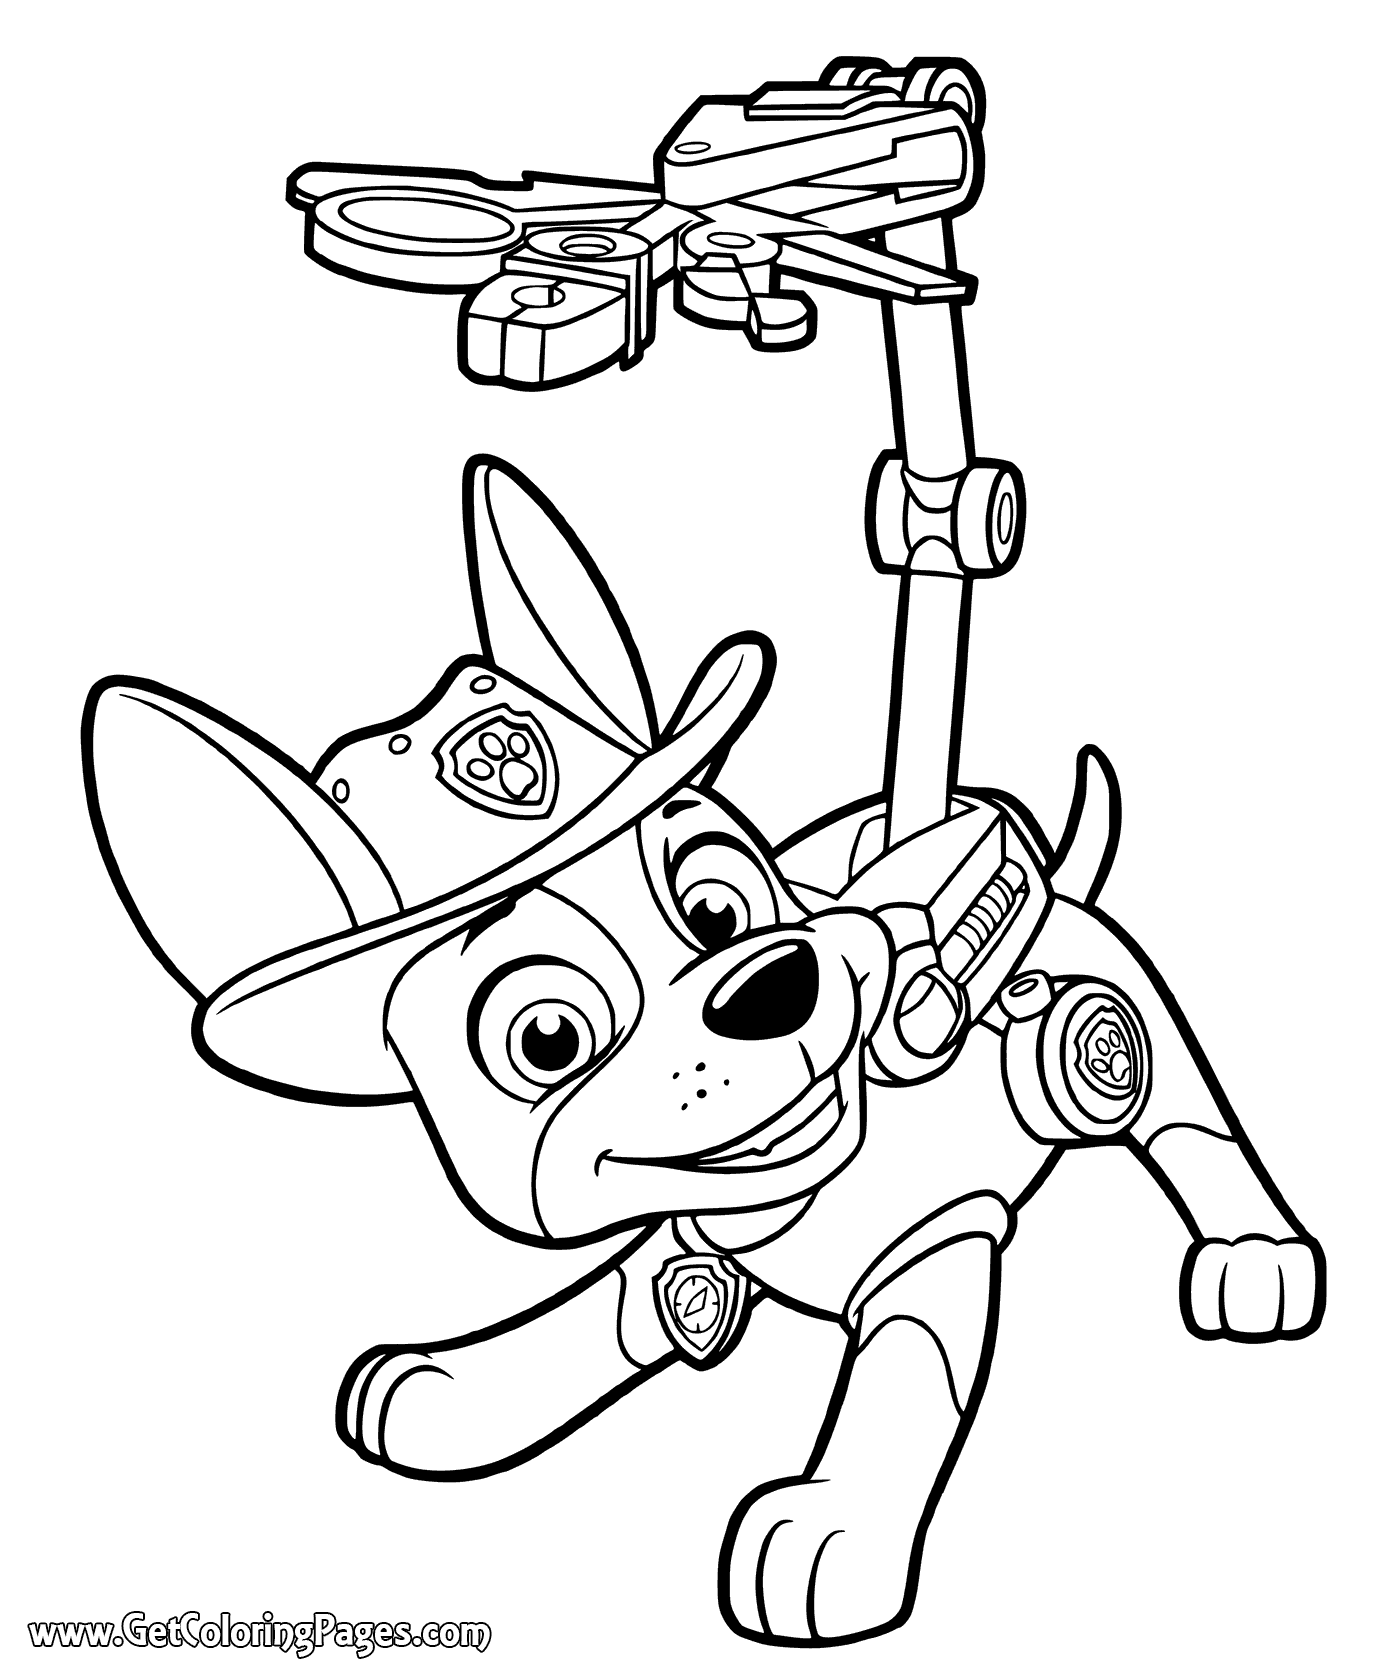 1400x1670 Paw Patrol Tracker Coloring Page